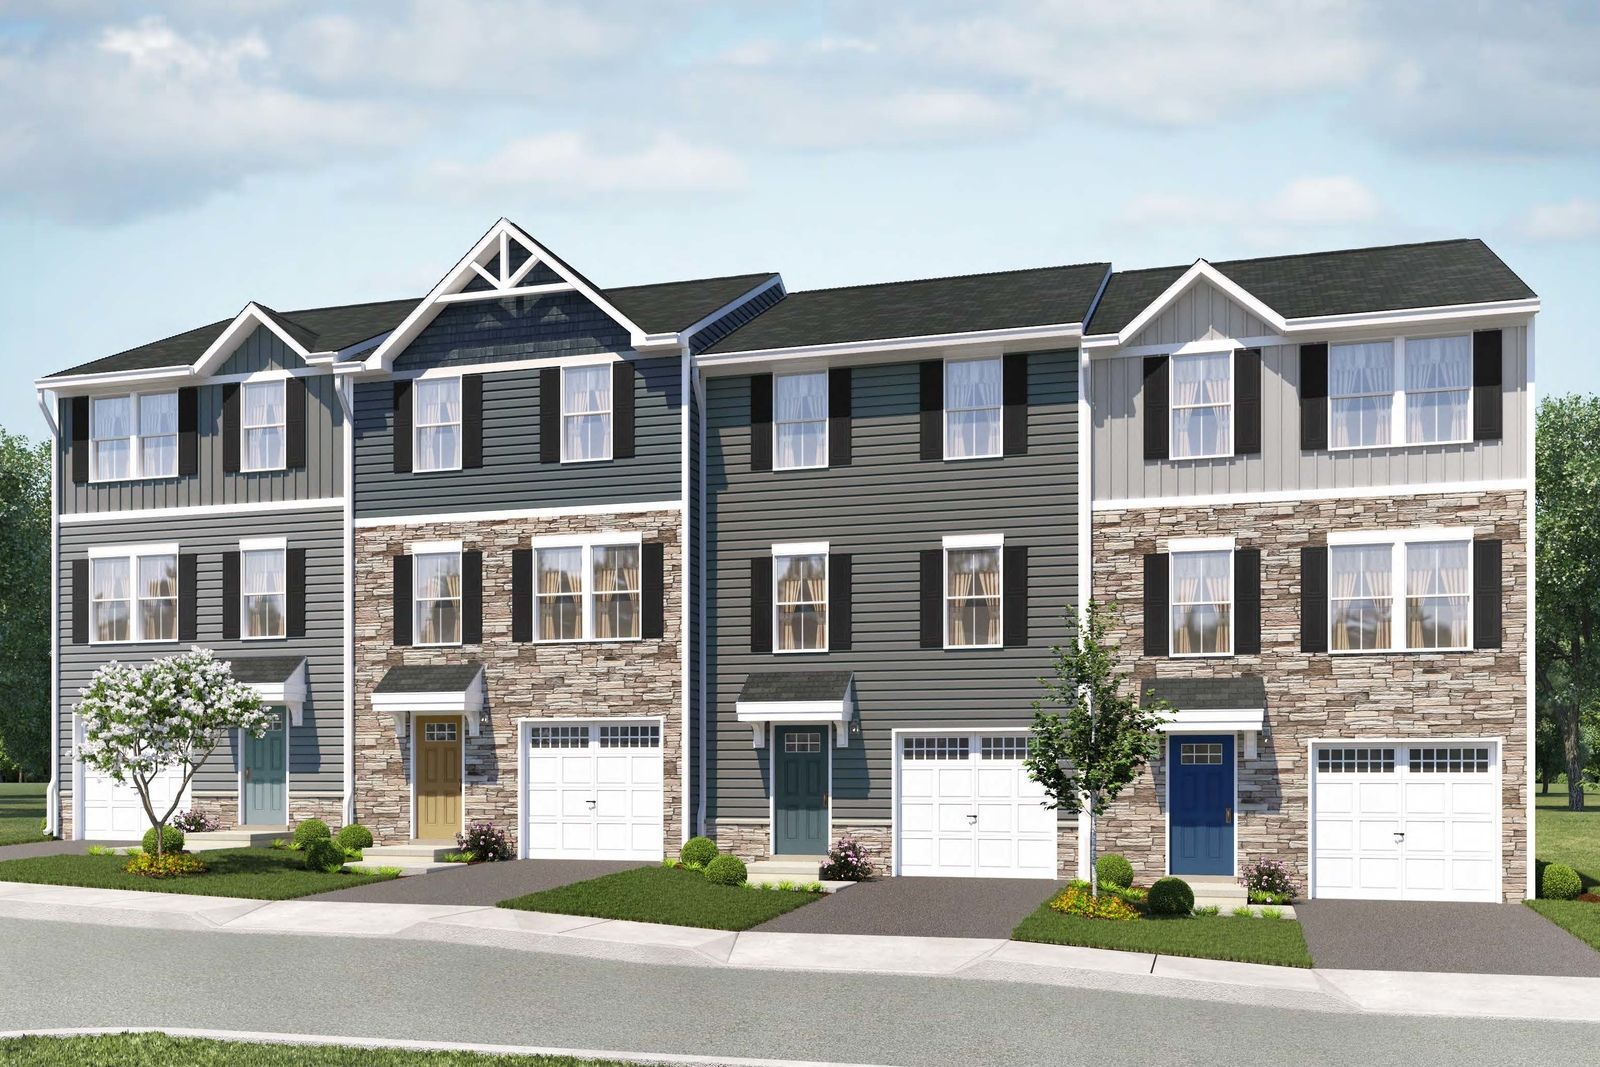 WELCOME TO SANATOGA CROSSING:Own for less than rent in the lowest-priced new townhomes in Montgomery County, less than 1 mile from 422 and Philadelphia Premium Outlets.Join the VIP list today!